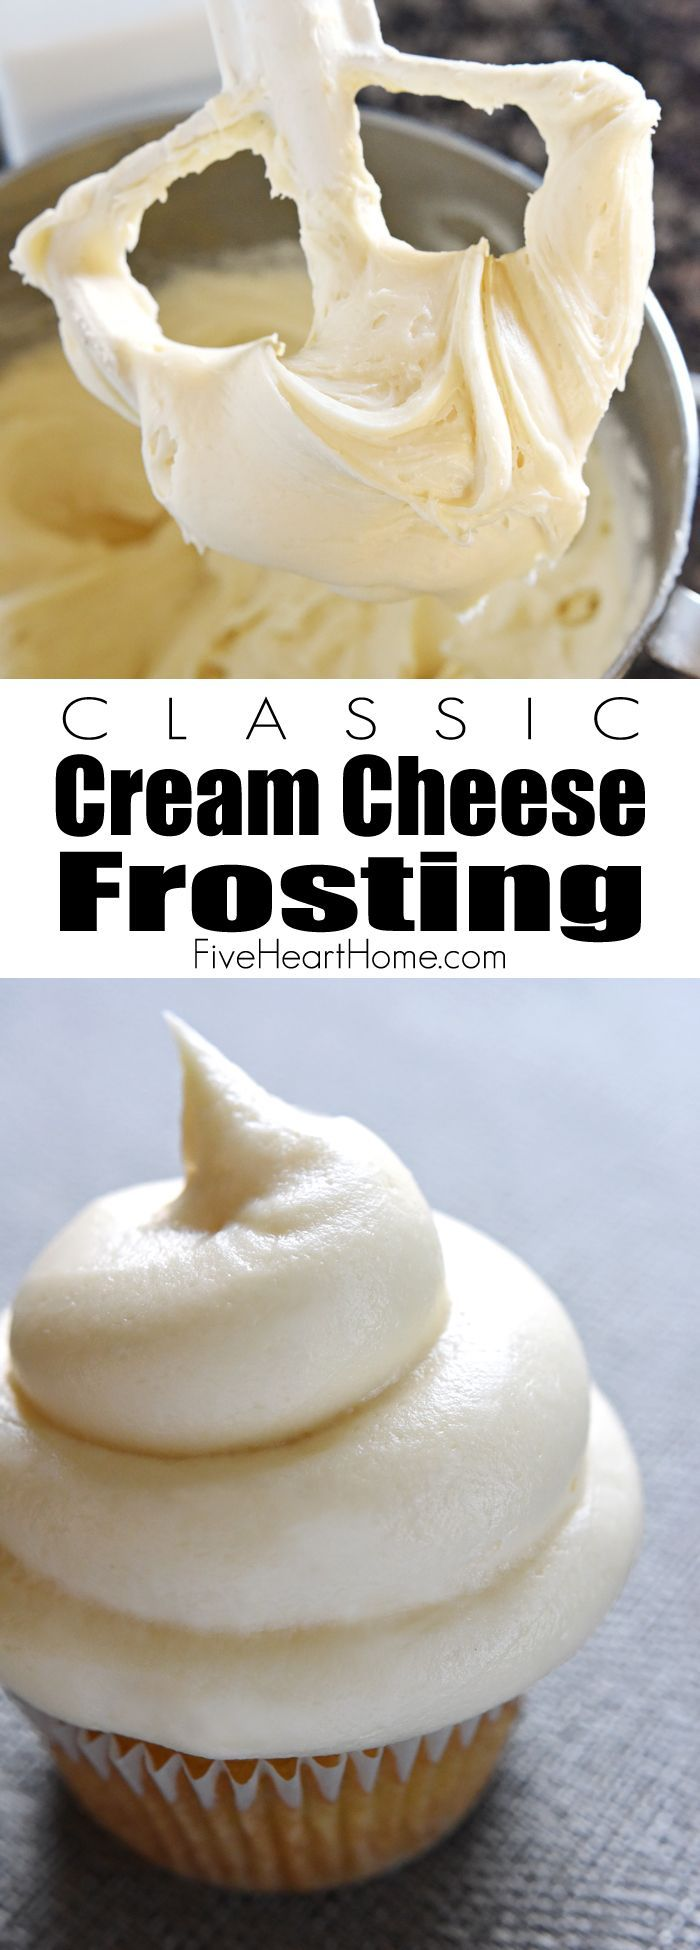 Classic Cream Cheese Frosting ~ silky and sweet with a slight tang from the cream cheese, this effortless frosting comes together with just four ingredients and complements a variety of cakes and cupcakes | FiveHeartHome.com